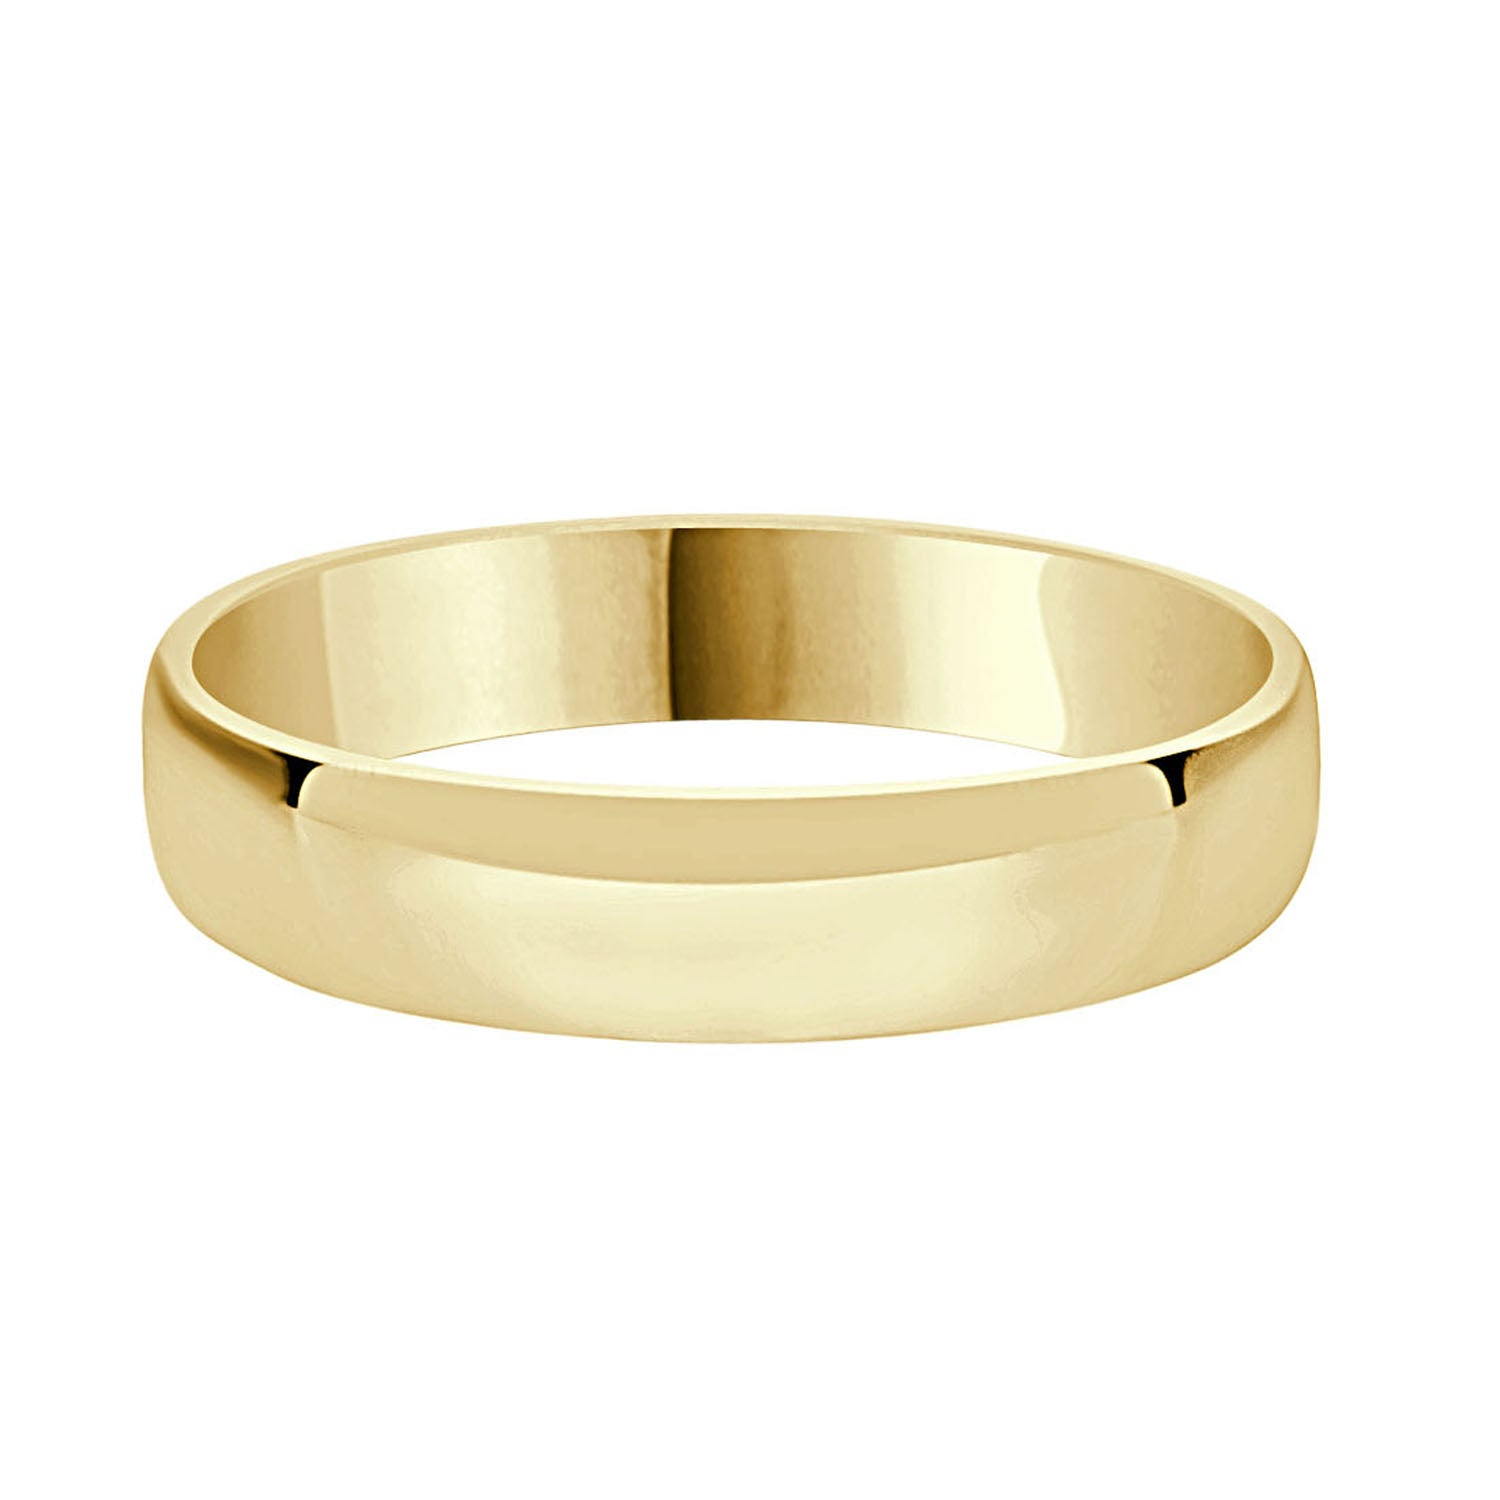 27a715683 Men's Wedding Bands – A&J Jewelers - Snellville Jeweler